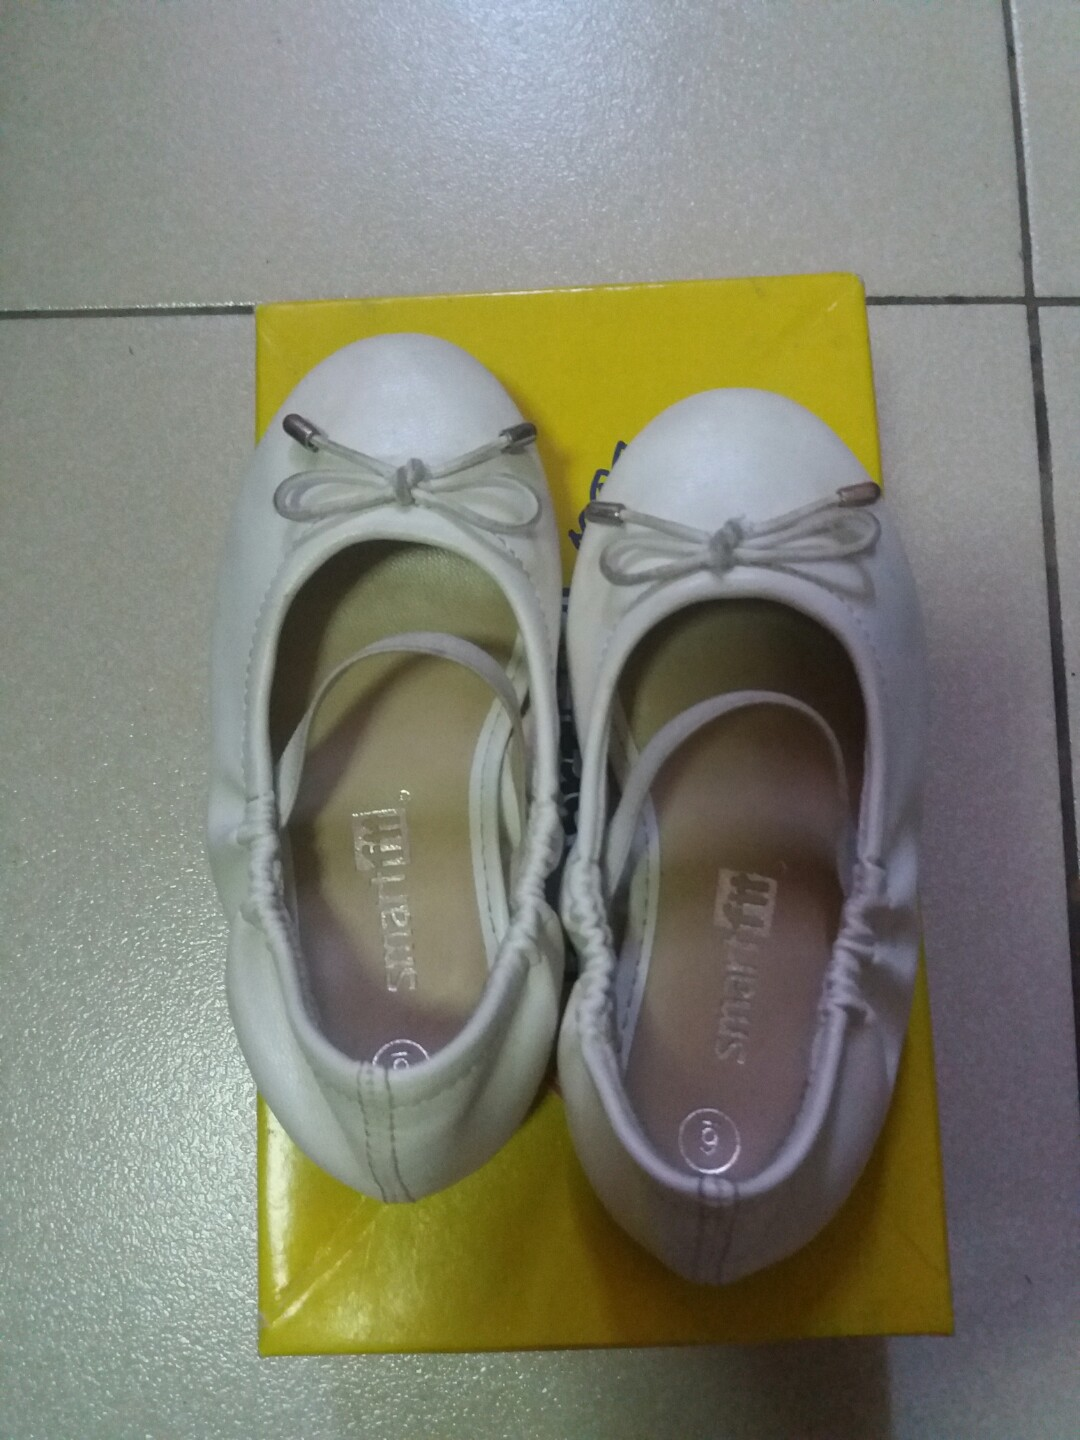 c185ca91acdf Smartfit white shoes girls size 6 from payless store